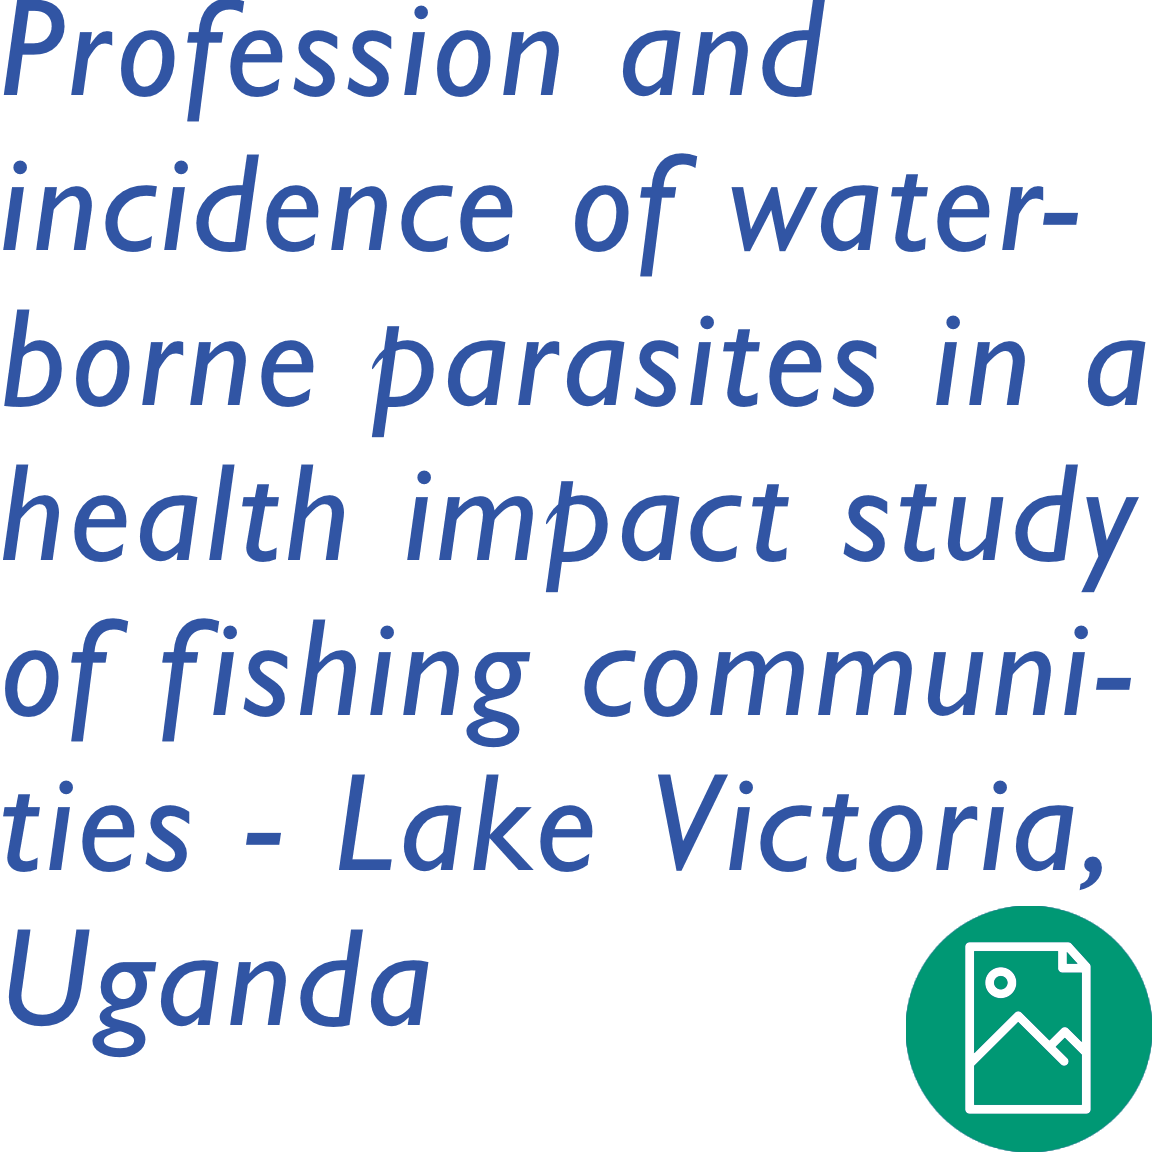 Profession and Incidence of Water-borne Parasites in a Health Impact Study of Fishing Communities along Lake Victoria in Uganda | Water Mission Research